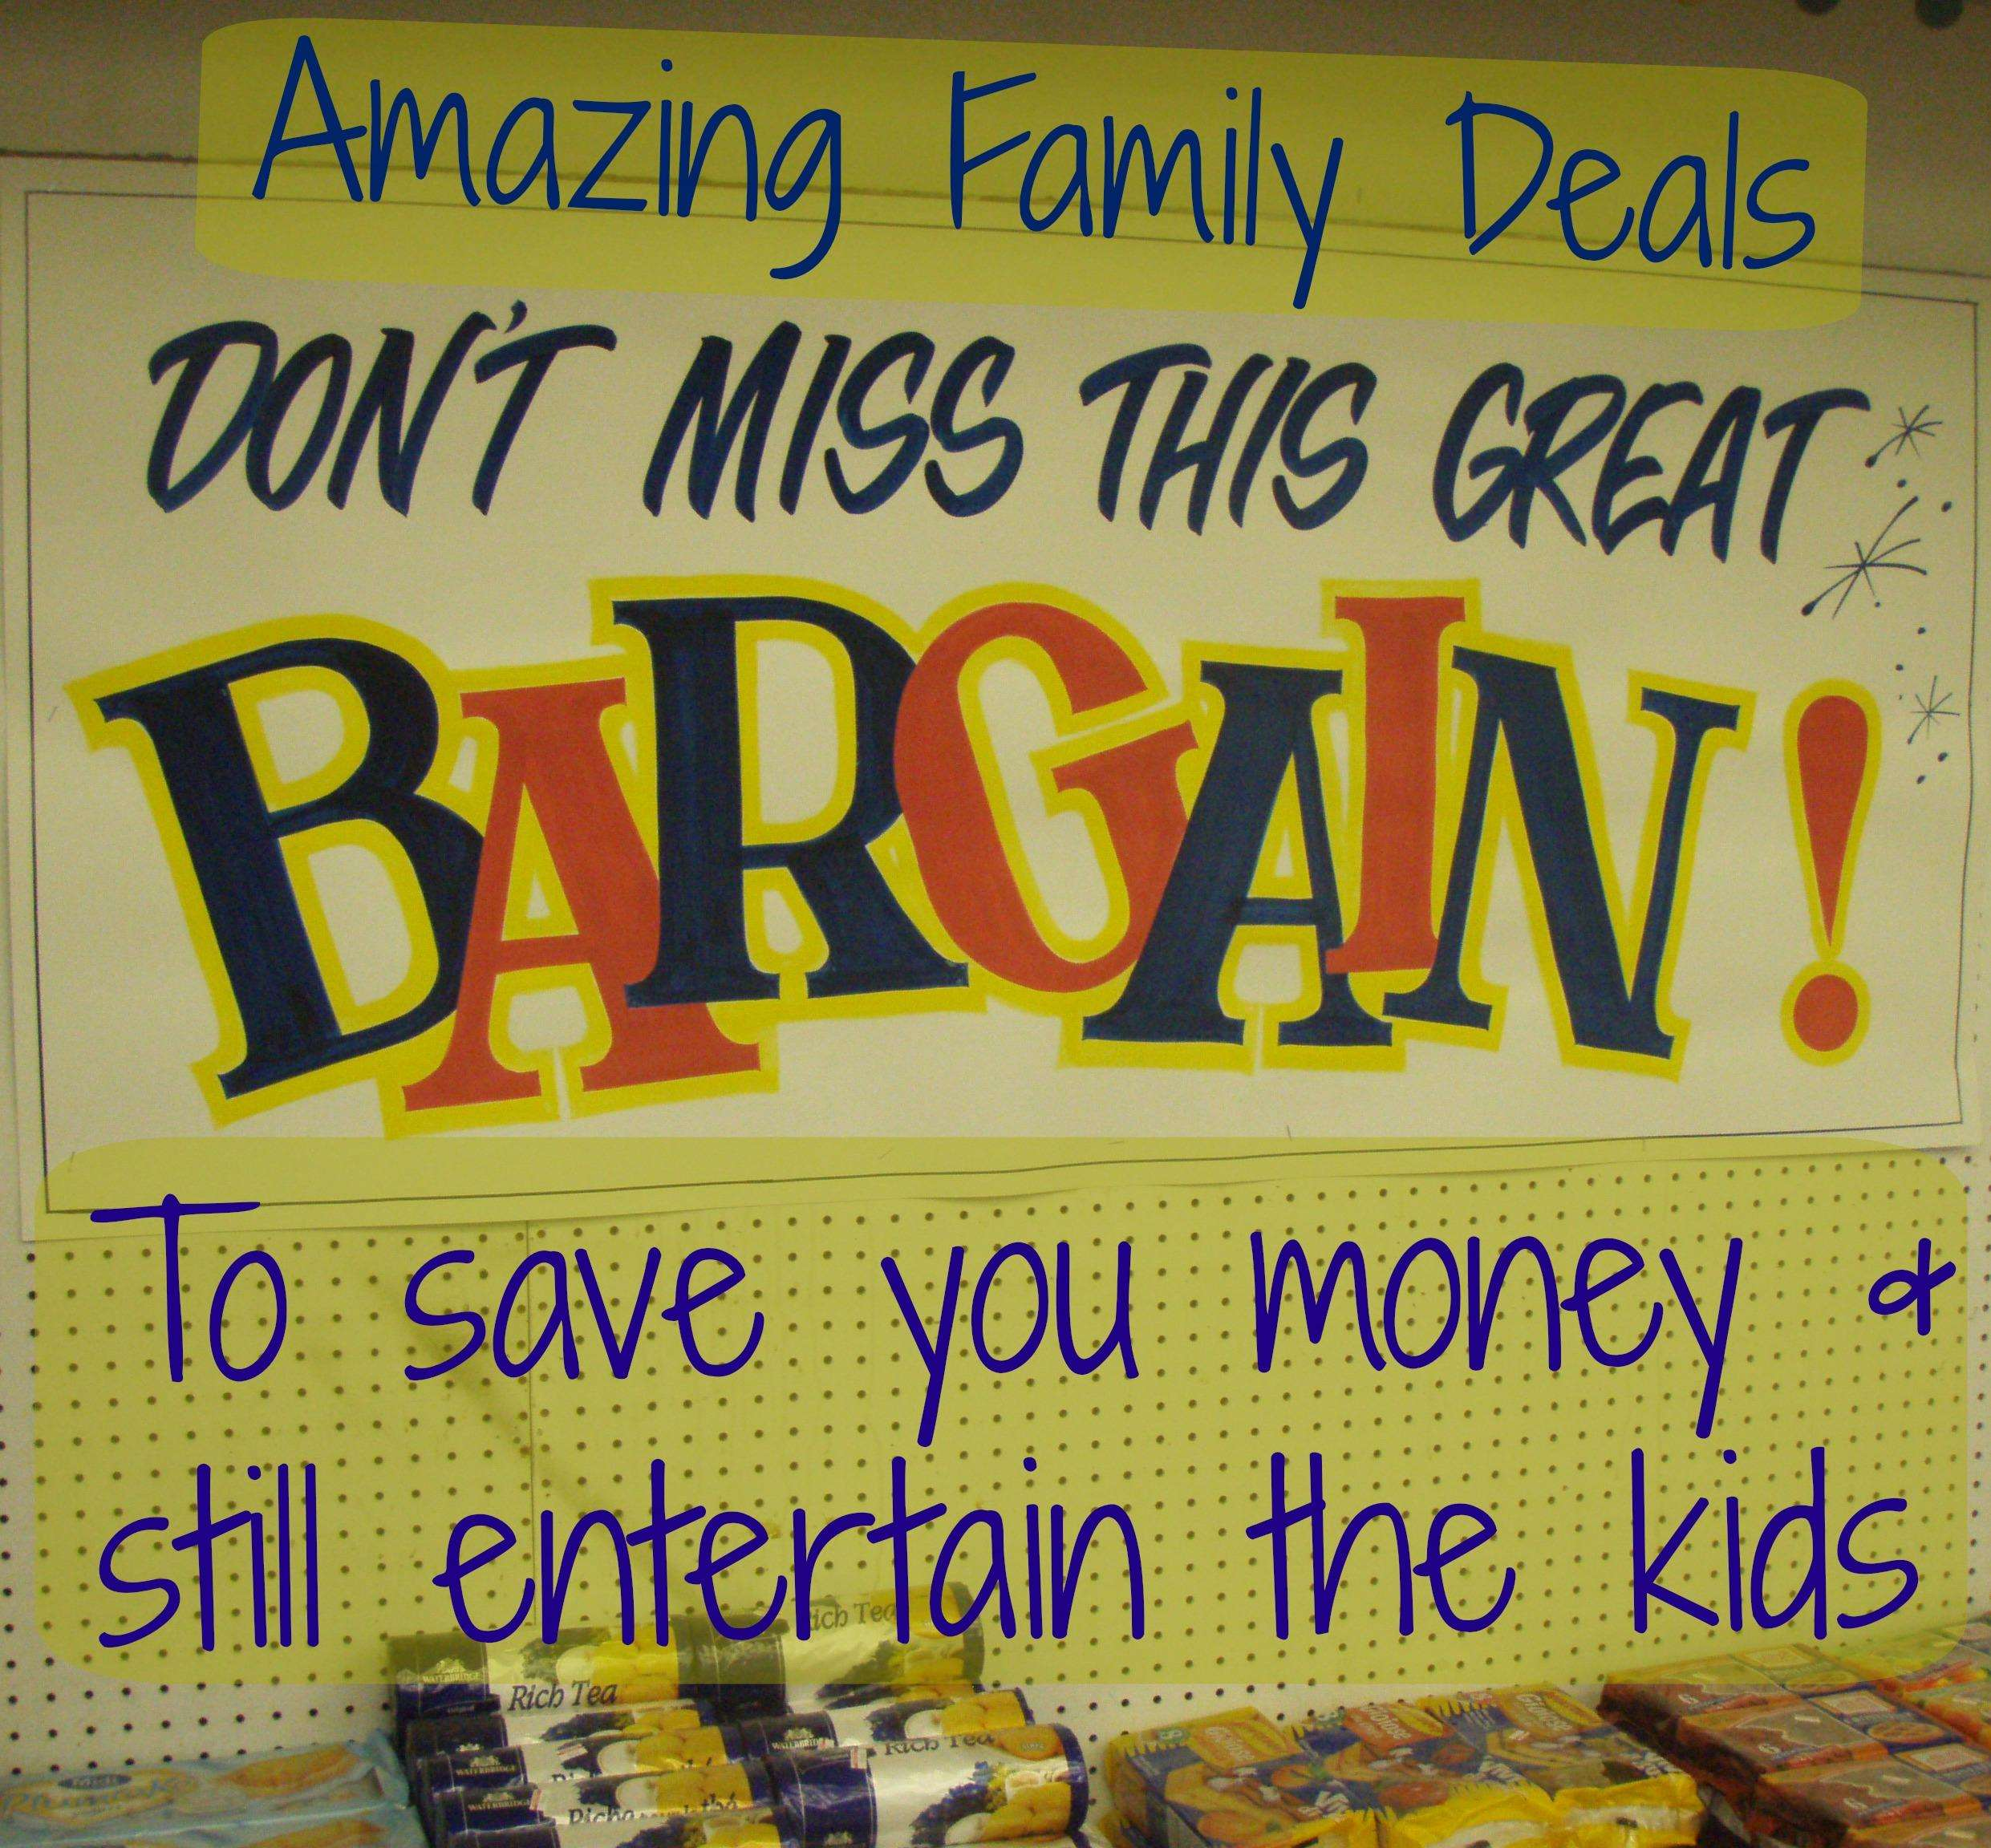 Amazing Family Deals to Save You Money, Discount 5%, uncategorised%